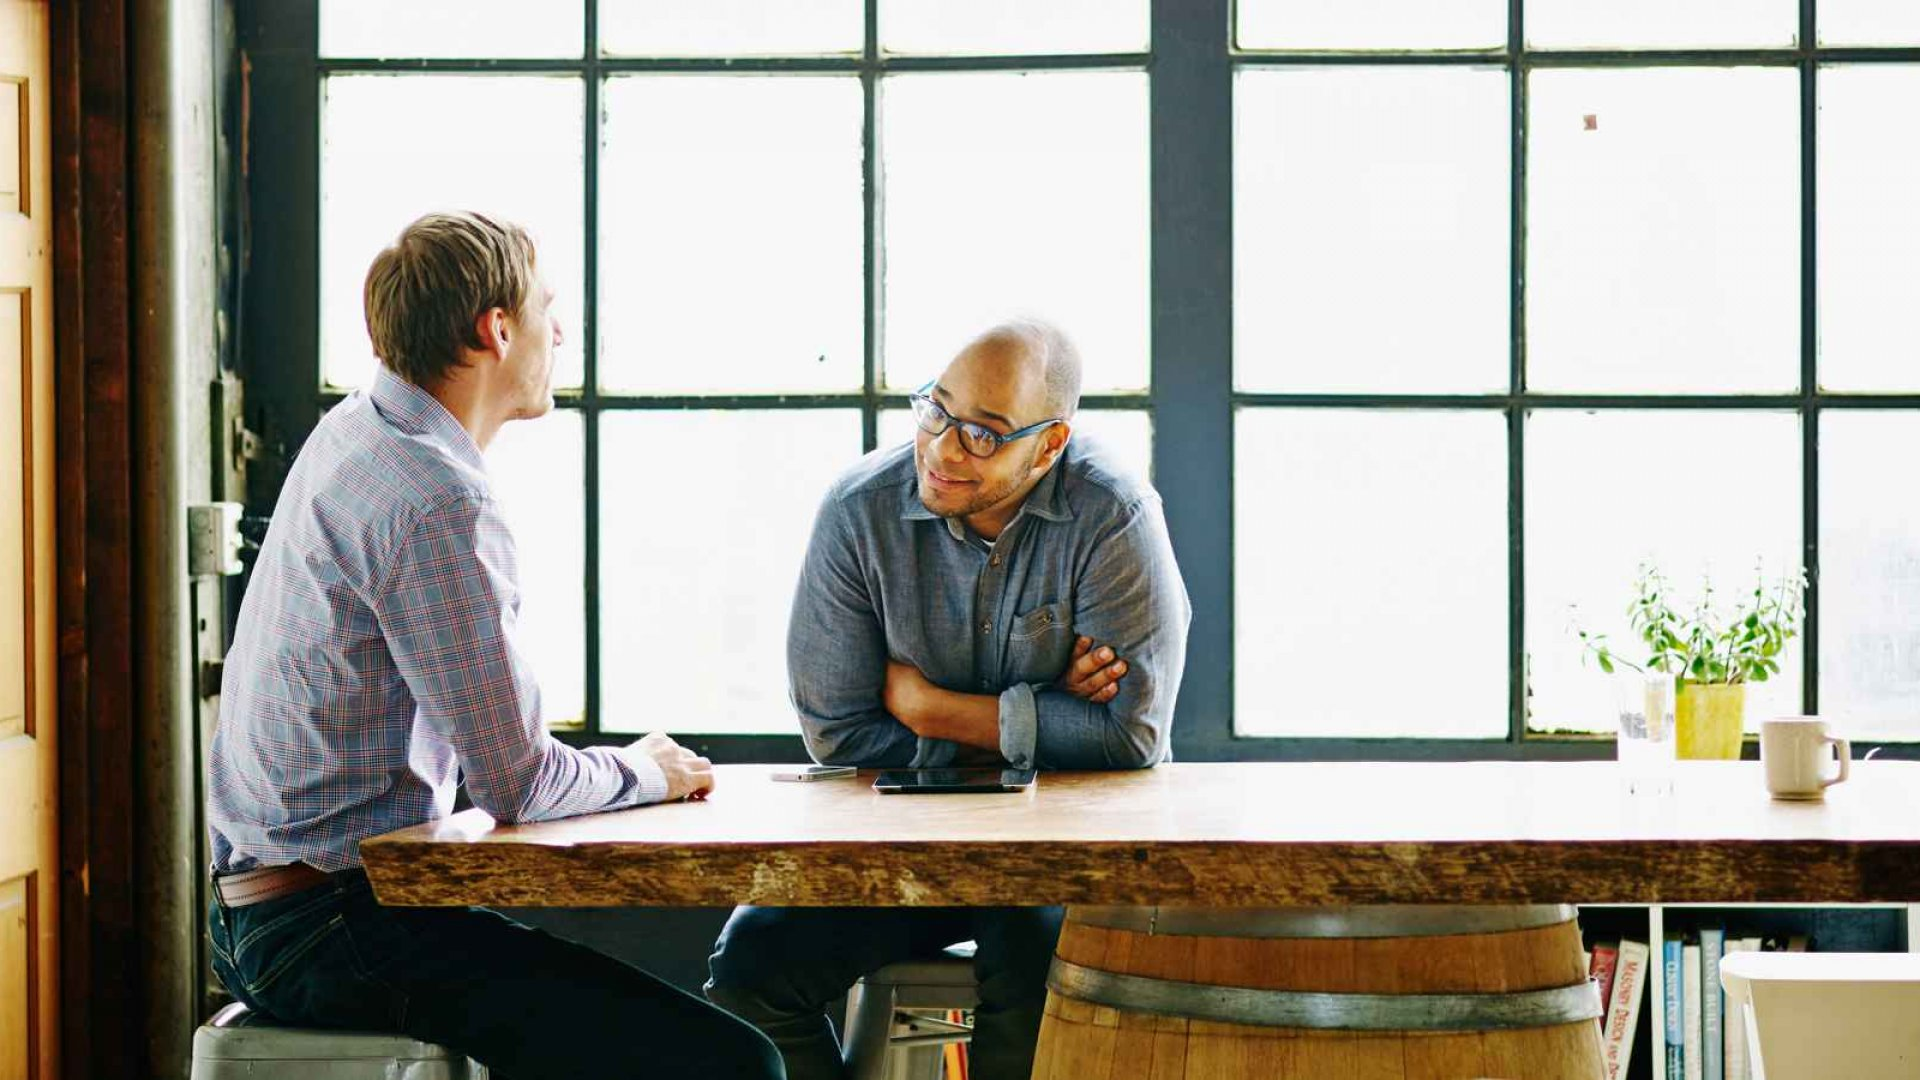 5 Underrated Conversational Skills of Highly Successful People